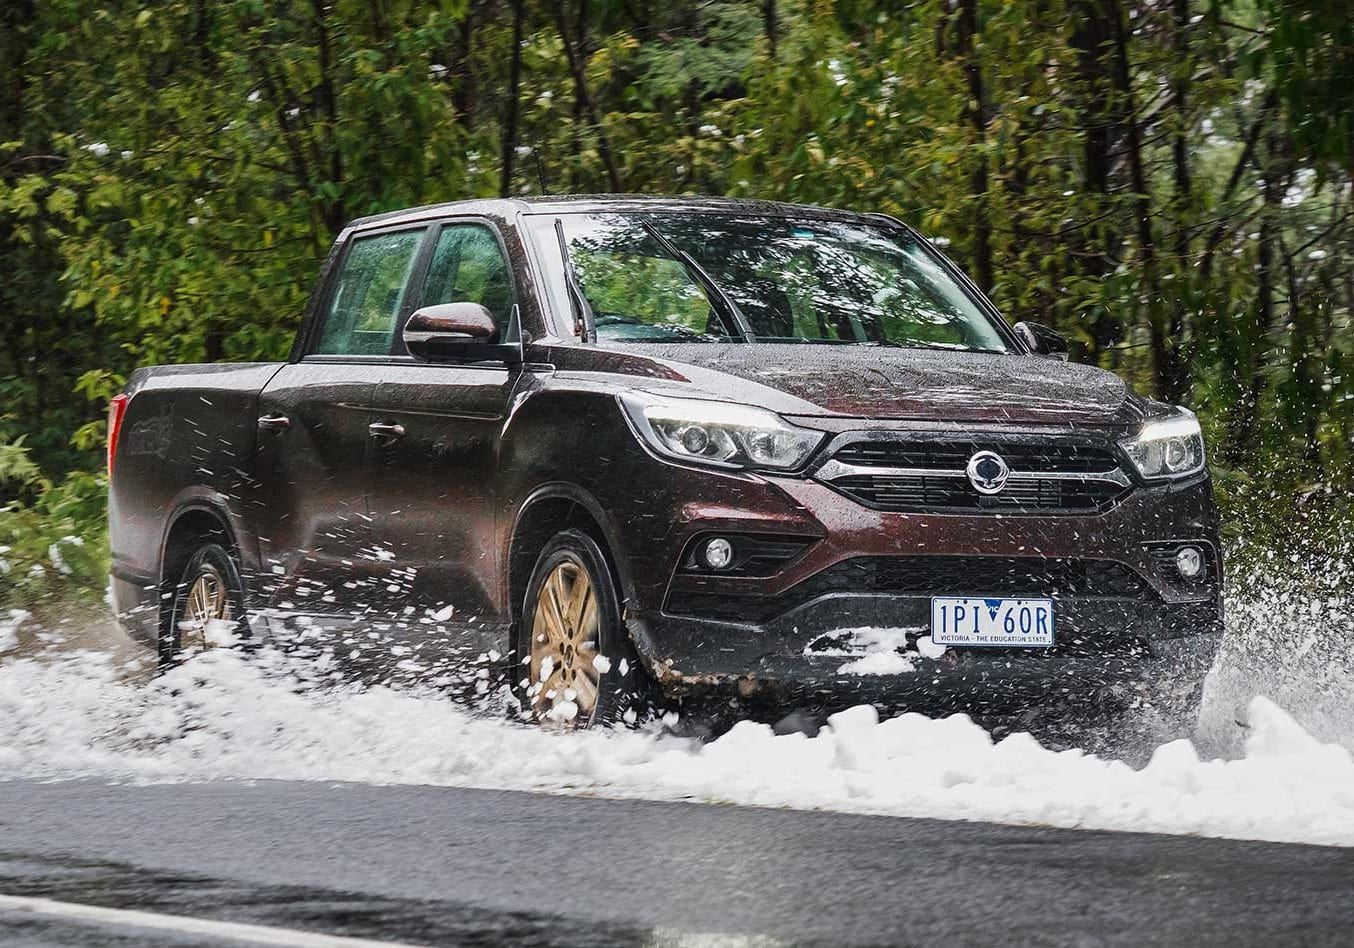 2019 SsangYong Musso XLV 4x4 review